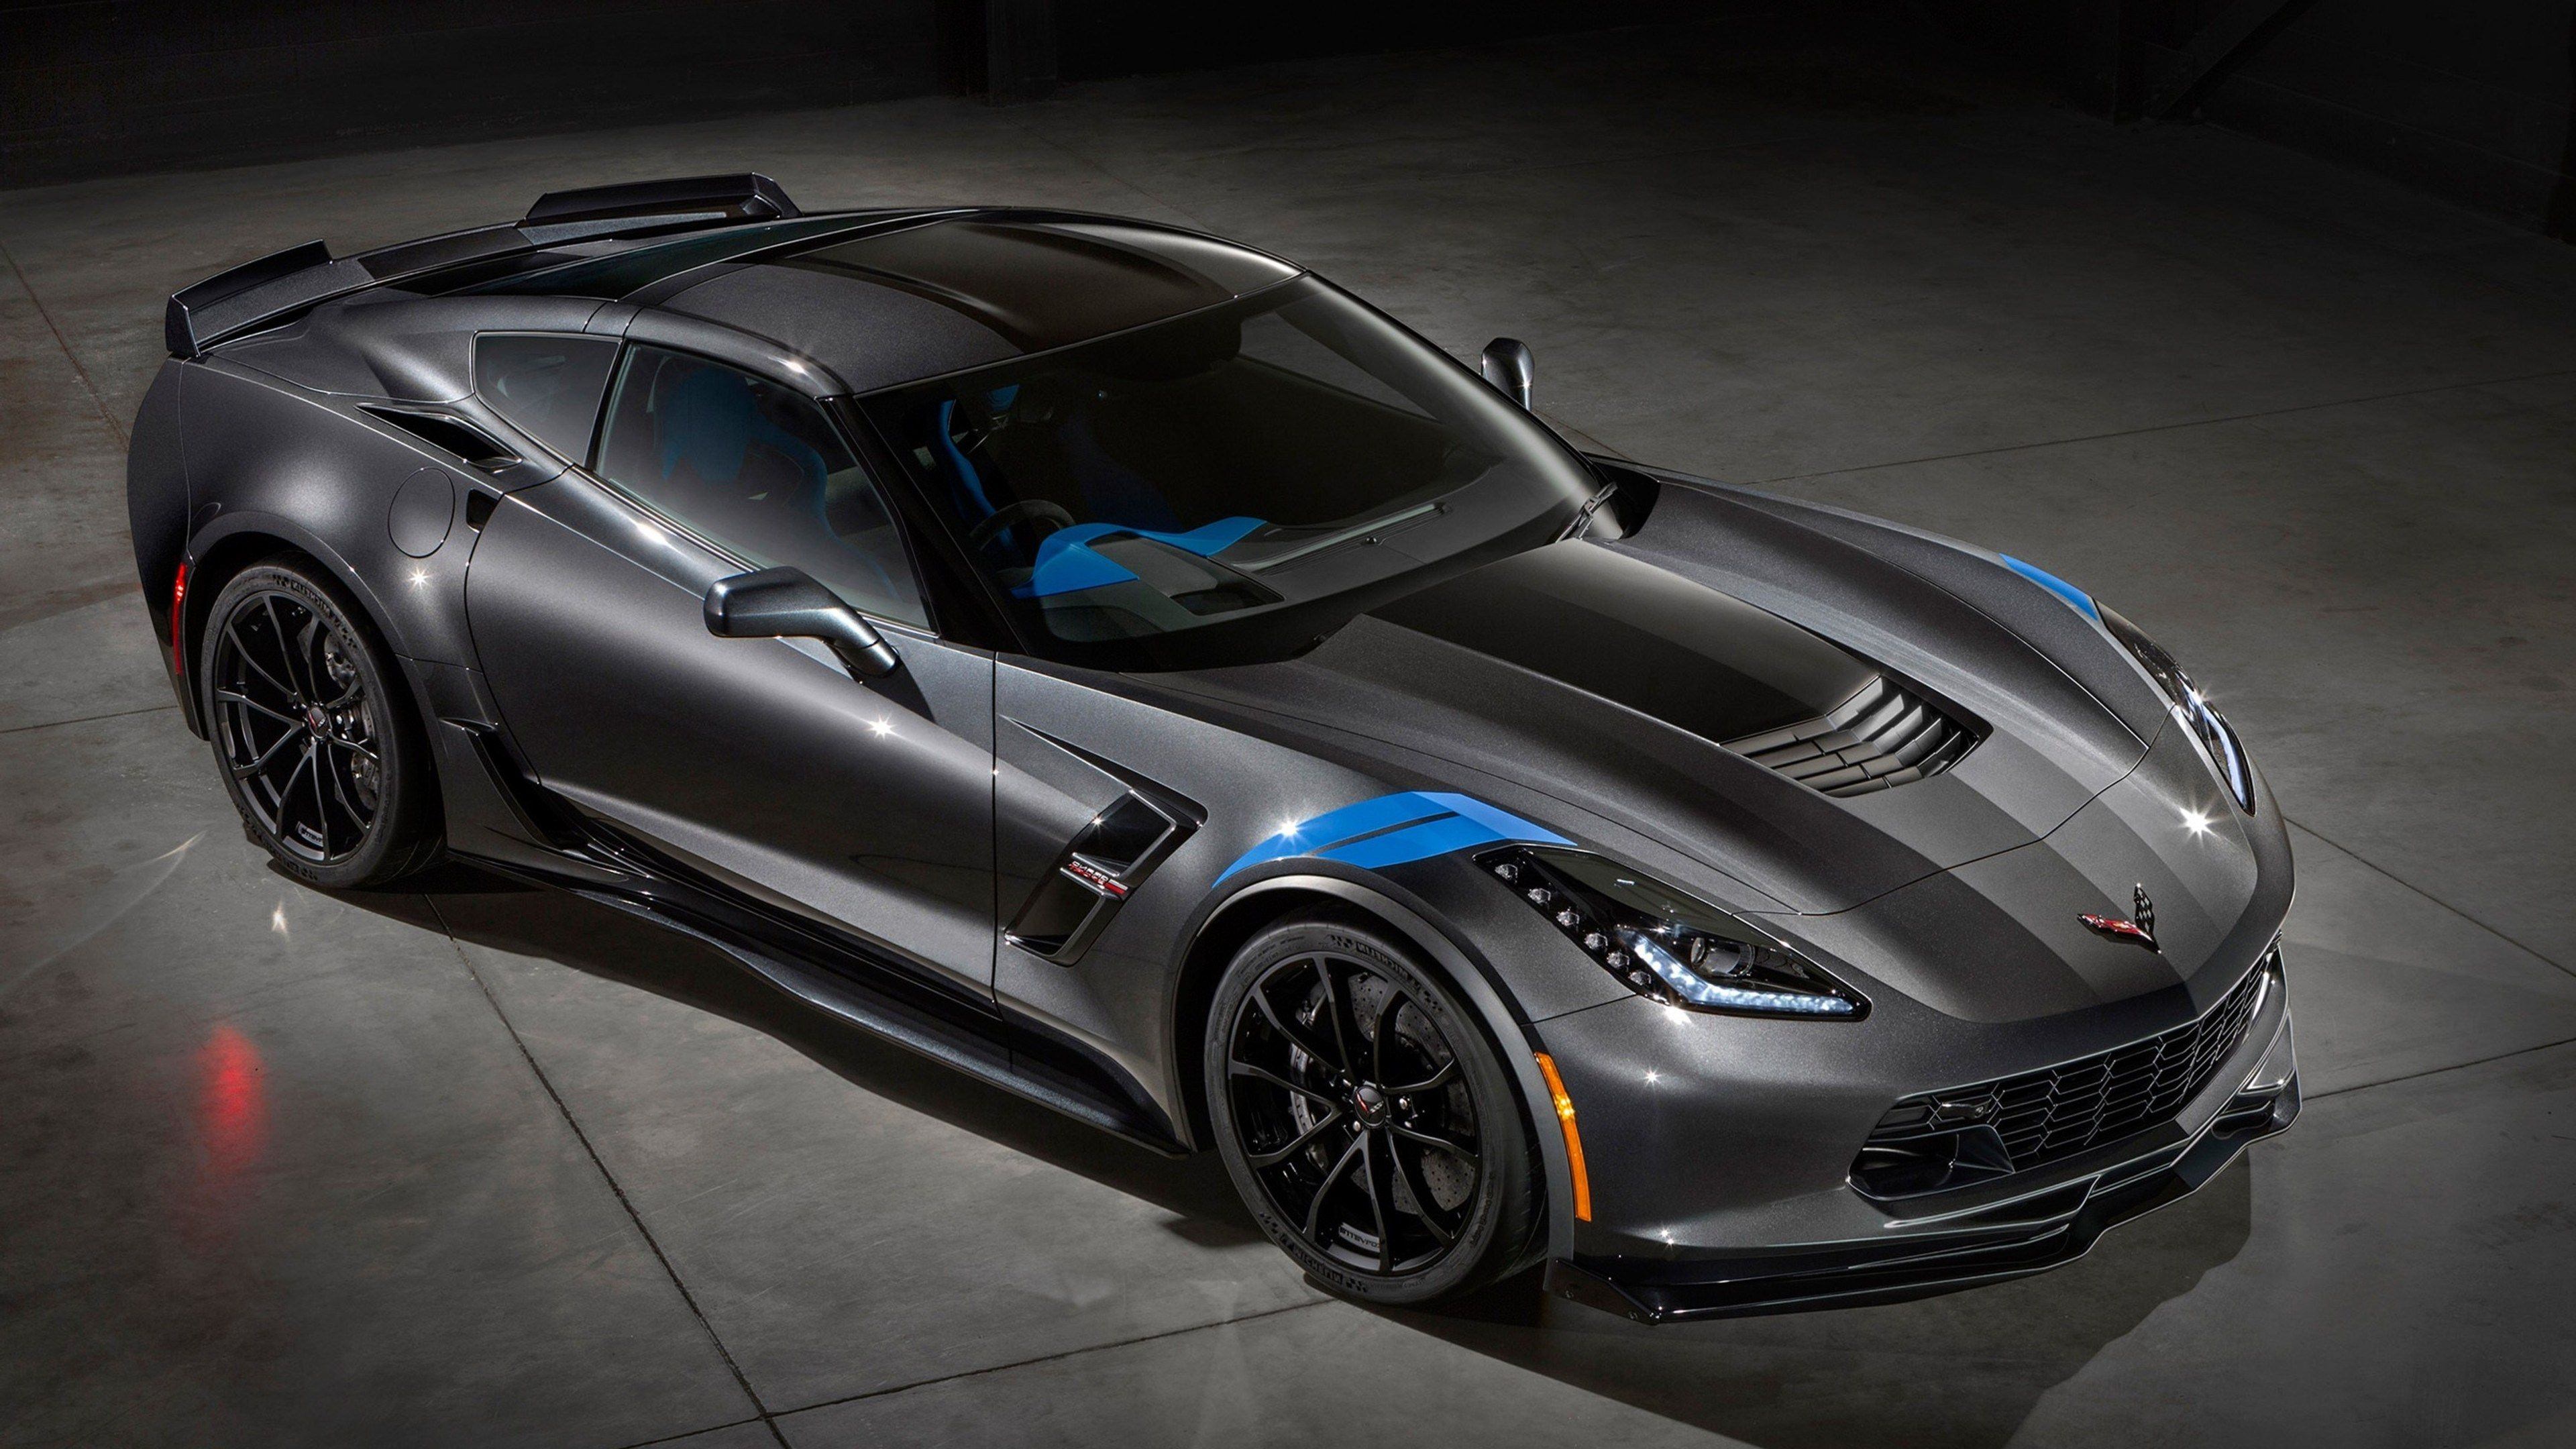 3840x2160 Chevrolet 4k Hd Wallpaper Download Free Corvette Grand Sport Chevrolet Corvette Chevrolet Wallpaper